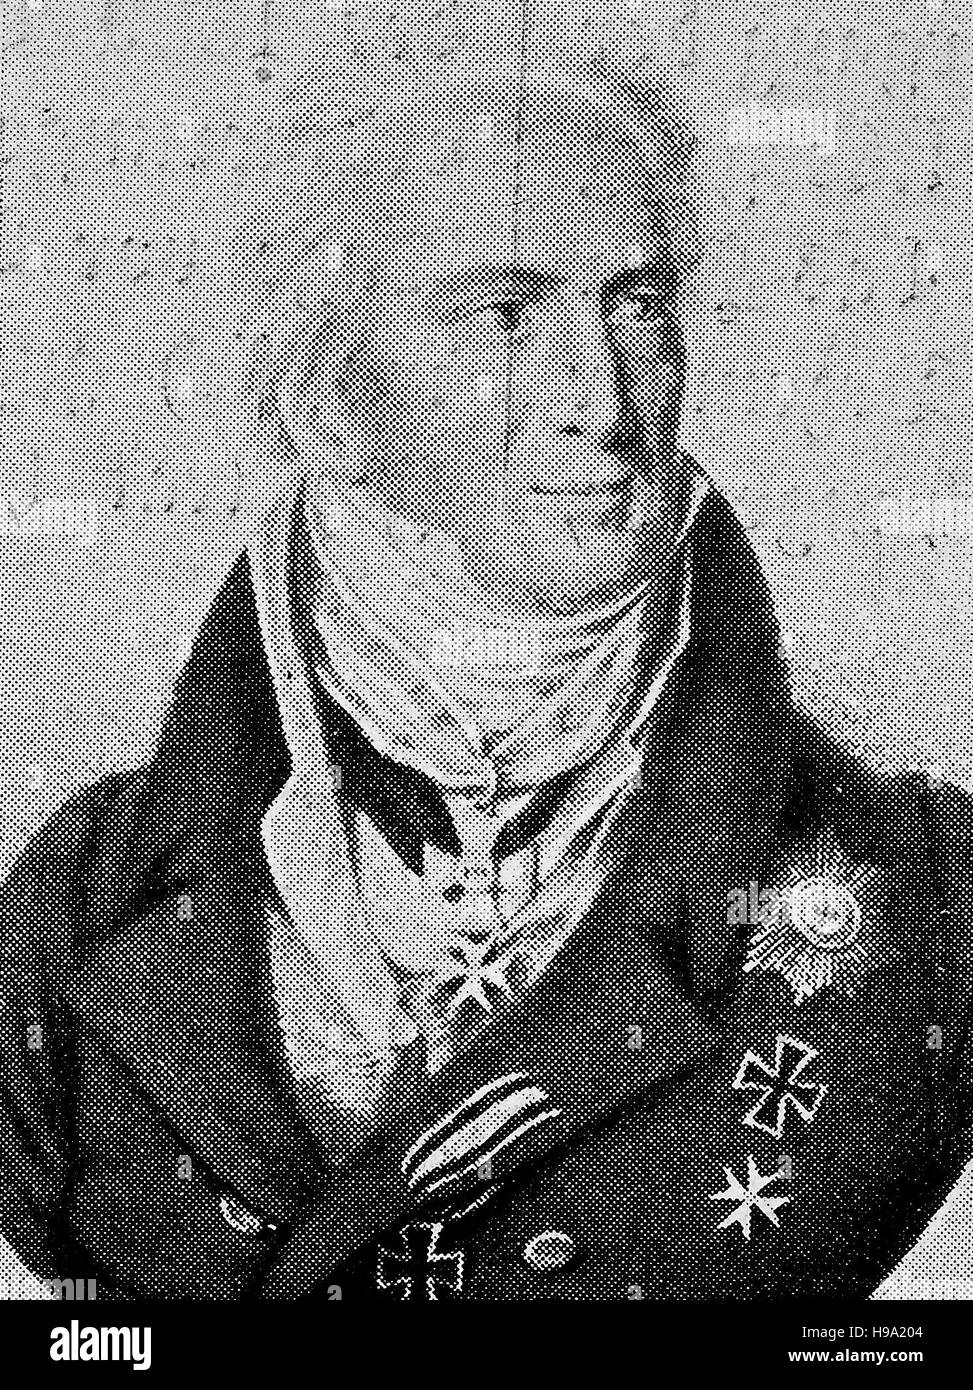 Karl August Fuerst von Hardenberg, 31 May 1750 - 26 November 1822, was a Prussian statesman and Prime Minister of - Stock Image